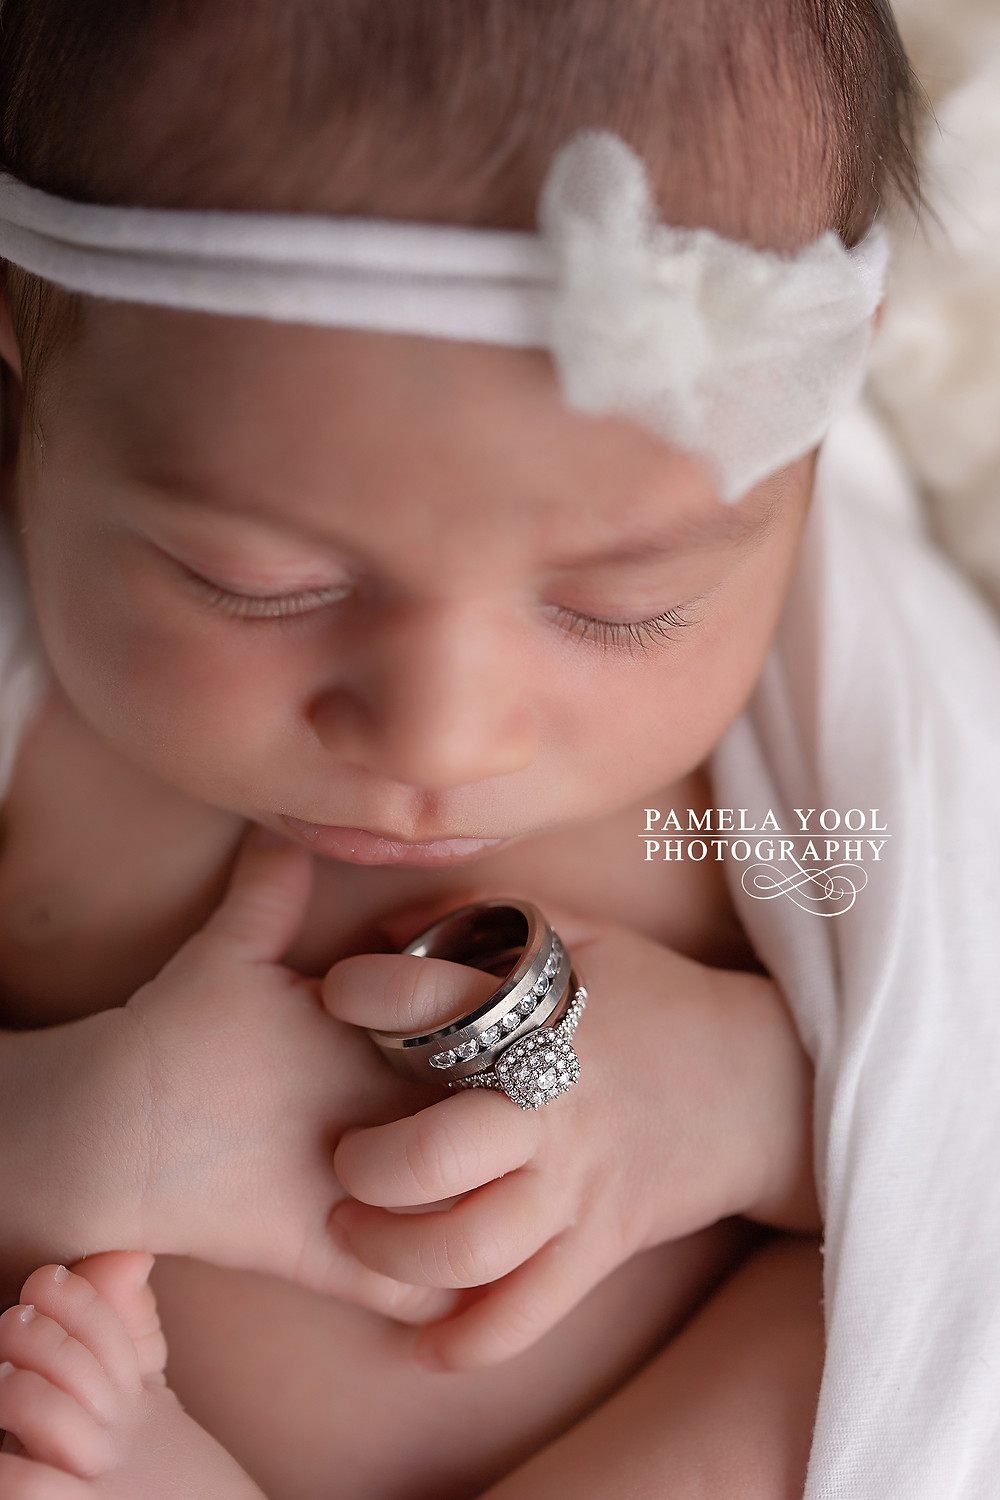 Newborn with parents wedding rings